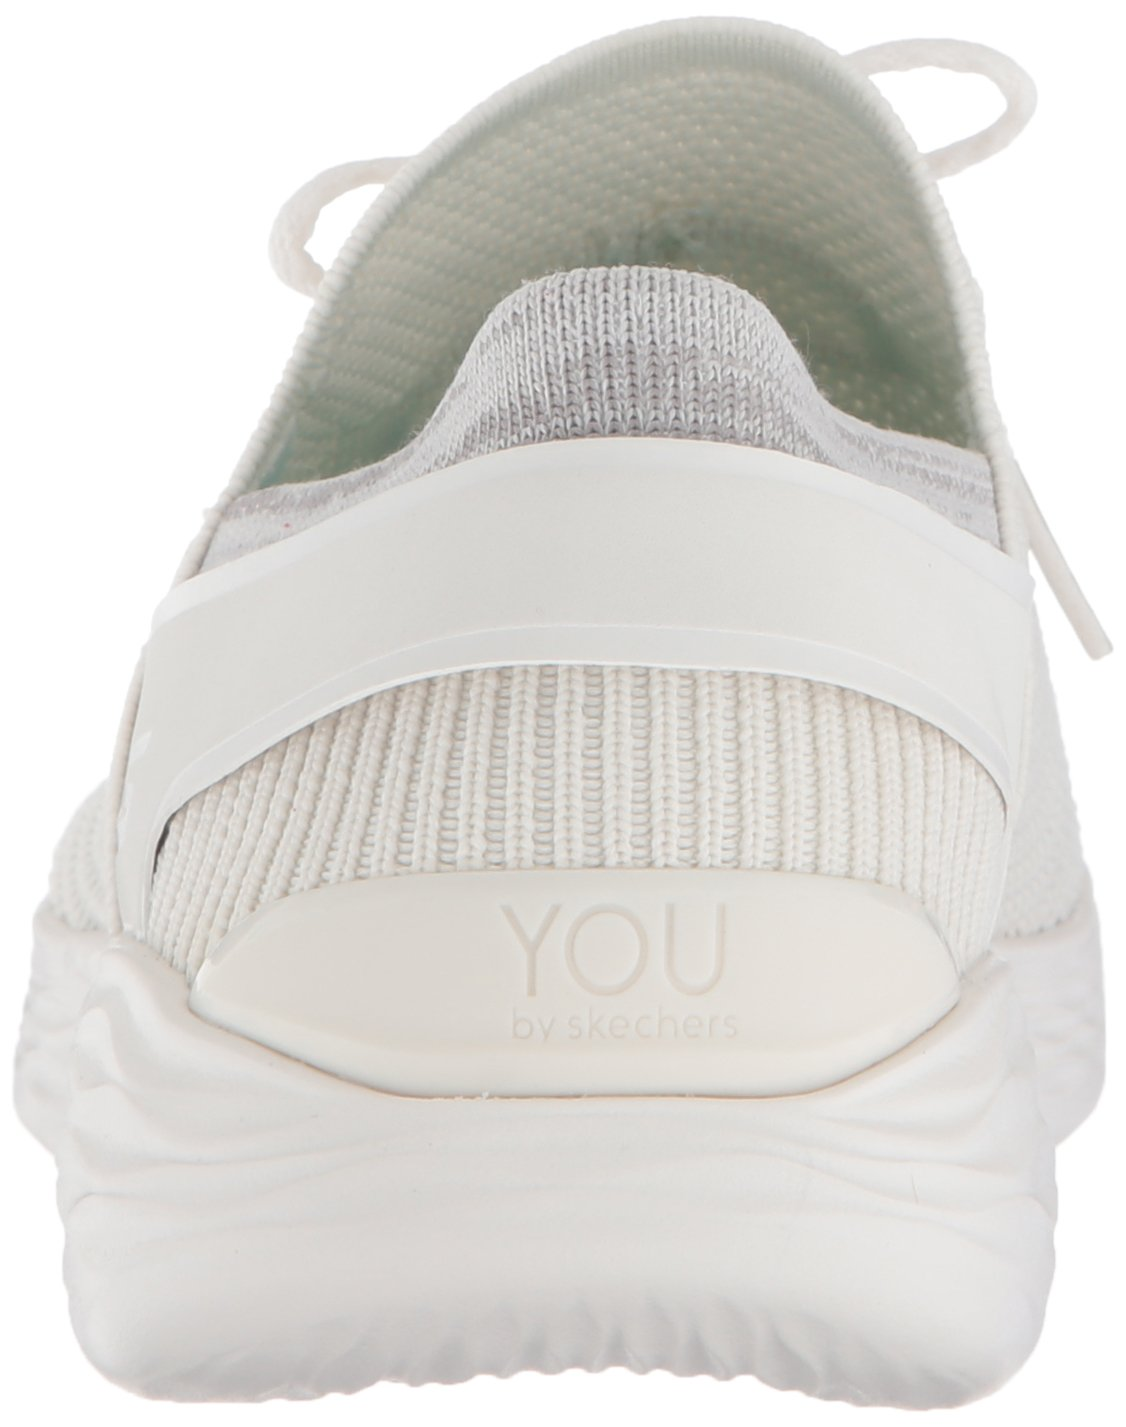 Skechers Women's You-14960 Sneaker B072KG6JPC 6.5 B(M) US|White